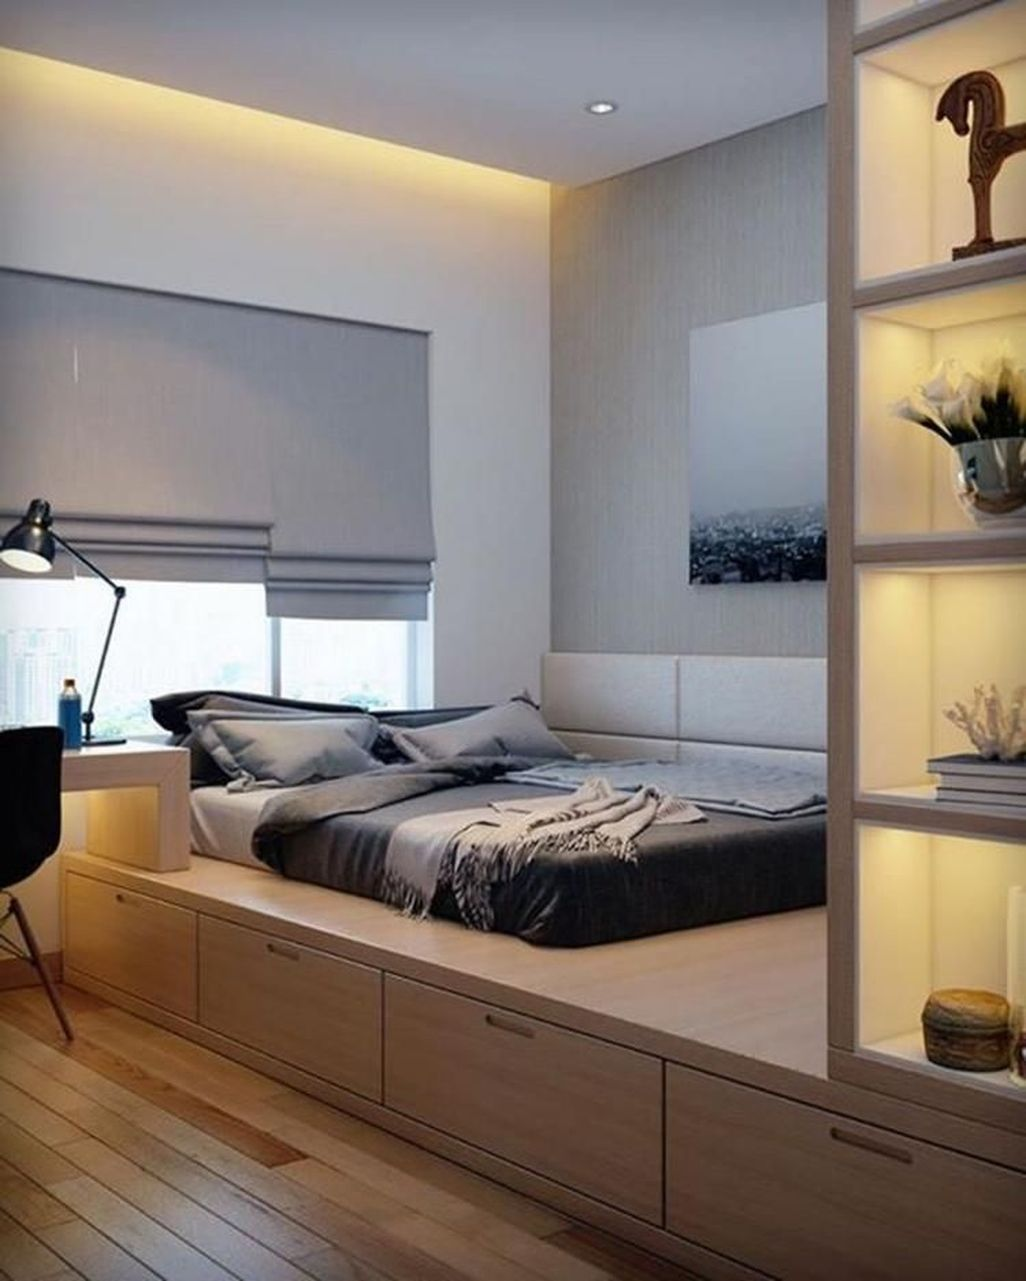 Cool 42 Modern But Simple Japanese Styled Bedroom Design Ideas More At Https Www Zyhomy Com Small Space Living Room Japanese Style Bedroom Small Room Design